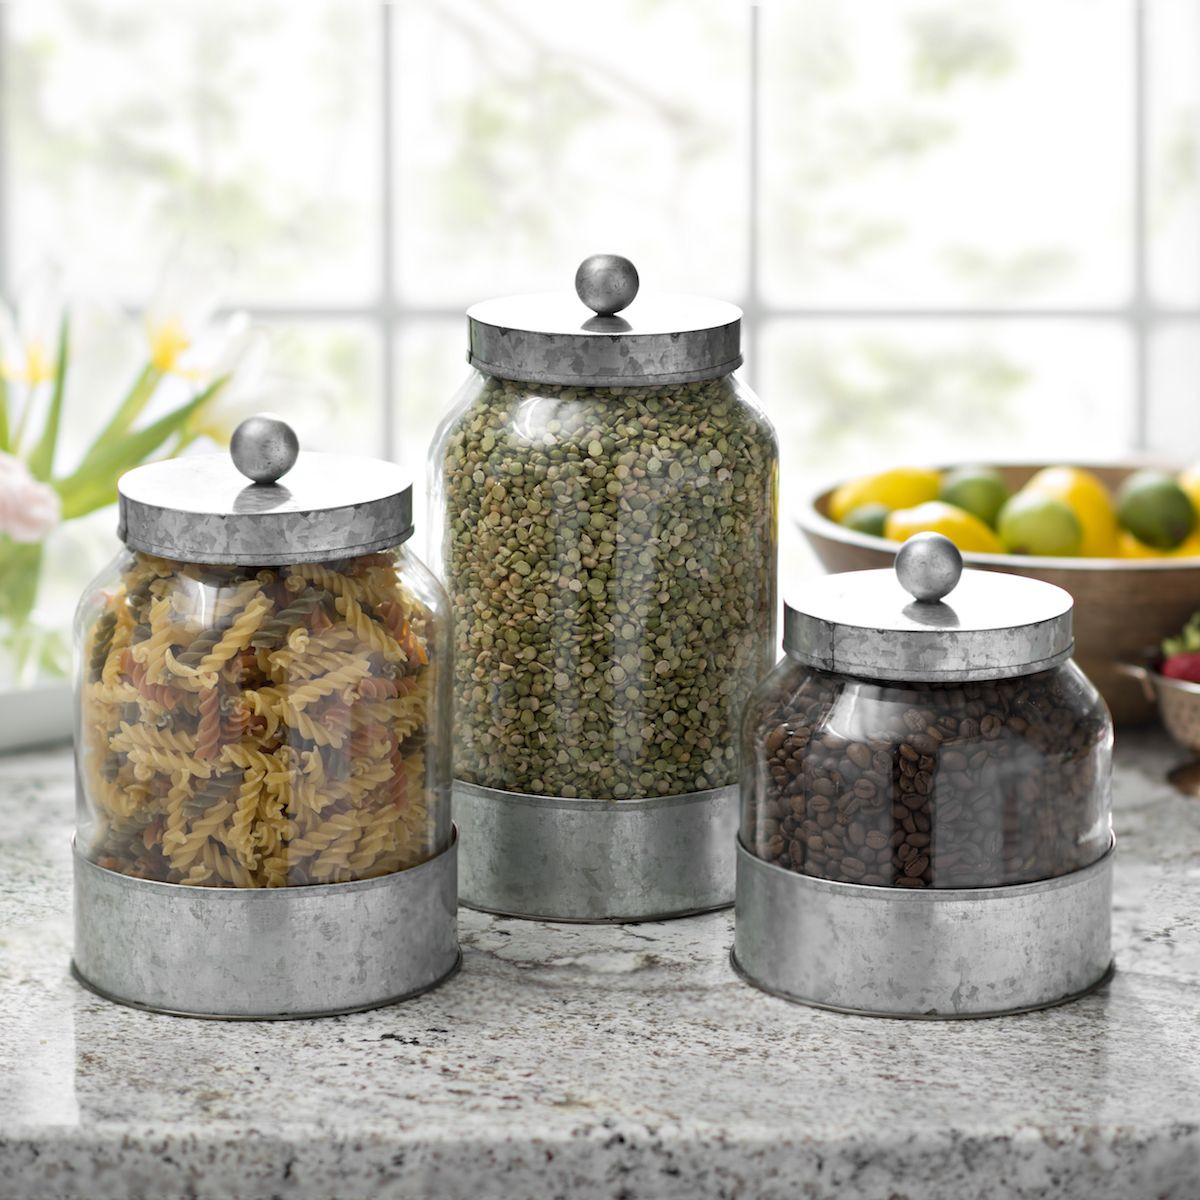 cute kitchen canisters product details galvanized metal and glass canisters set of 3 in 2019 farmhouse kitchen 2189